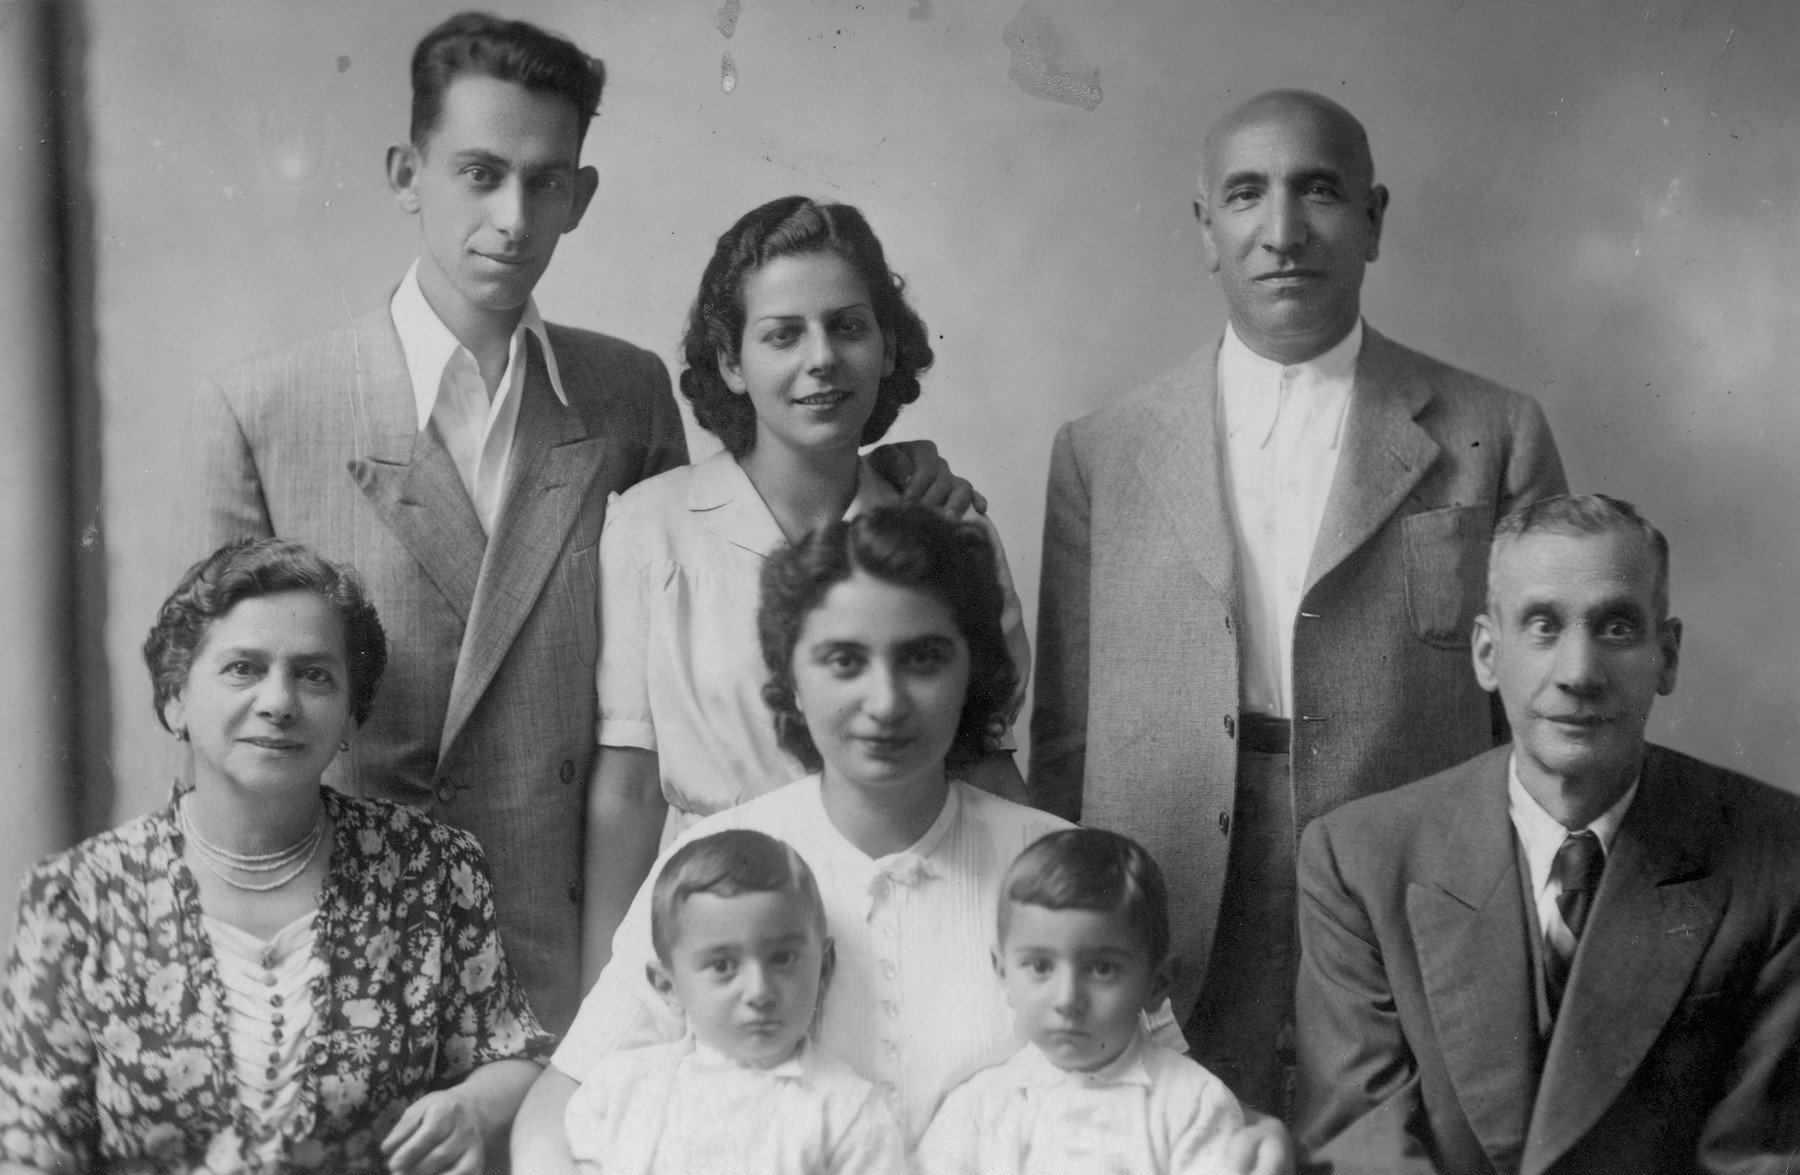 Group portrait of an extended Jewish family who fled to Italy.  Pictured in the back row from left to right: Chaim Finci, Tilda (Finci) Mosafia, and Albert Kabilio. Pictured in the front row from left to right: Rahel Finci, Ella (Kabilio) Finci with her sons, Shmuel and Avraham, in her hands, and Avram Finci.